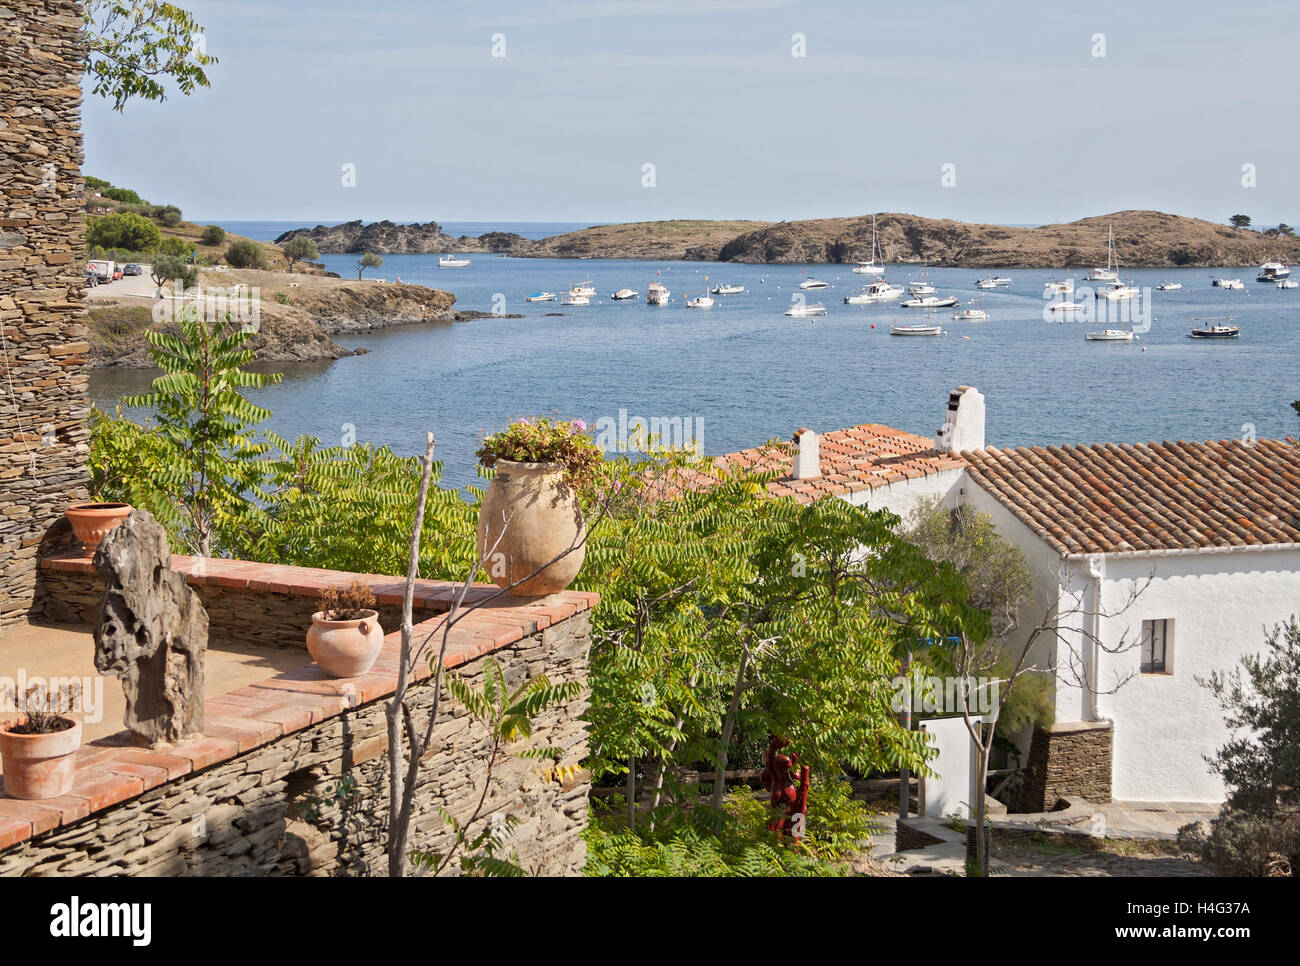 View of the small bay of Port Lligat in Catalonia, Spain - Stock Image